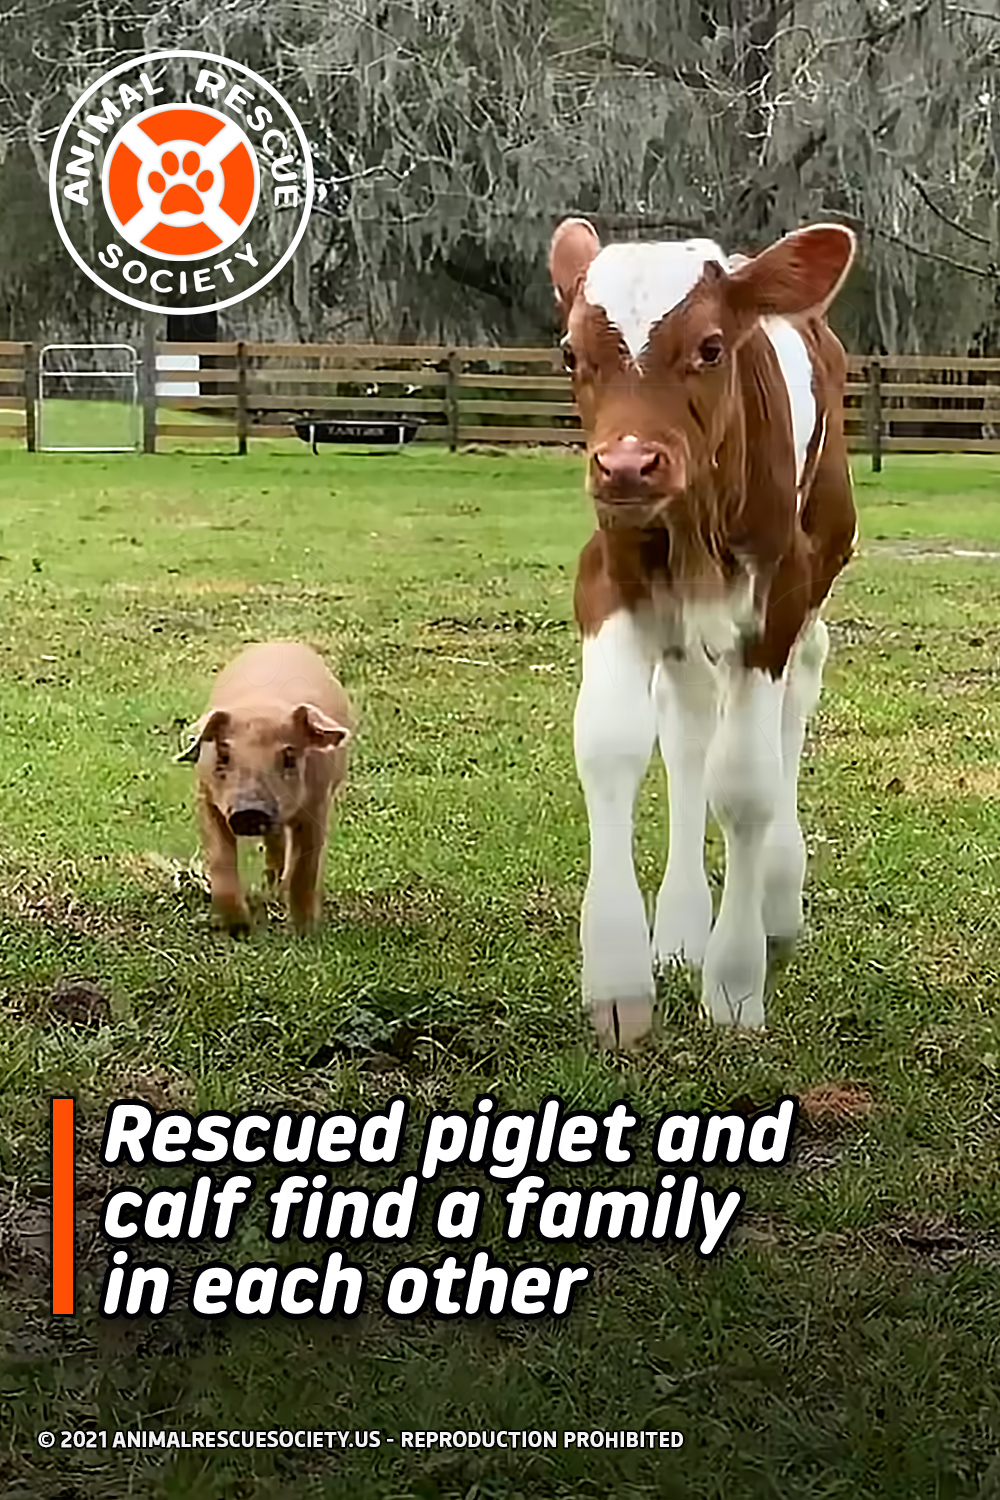 Rescued piglet and calf find a family in each other